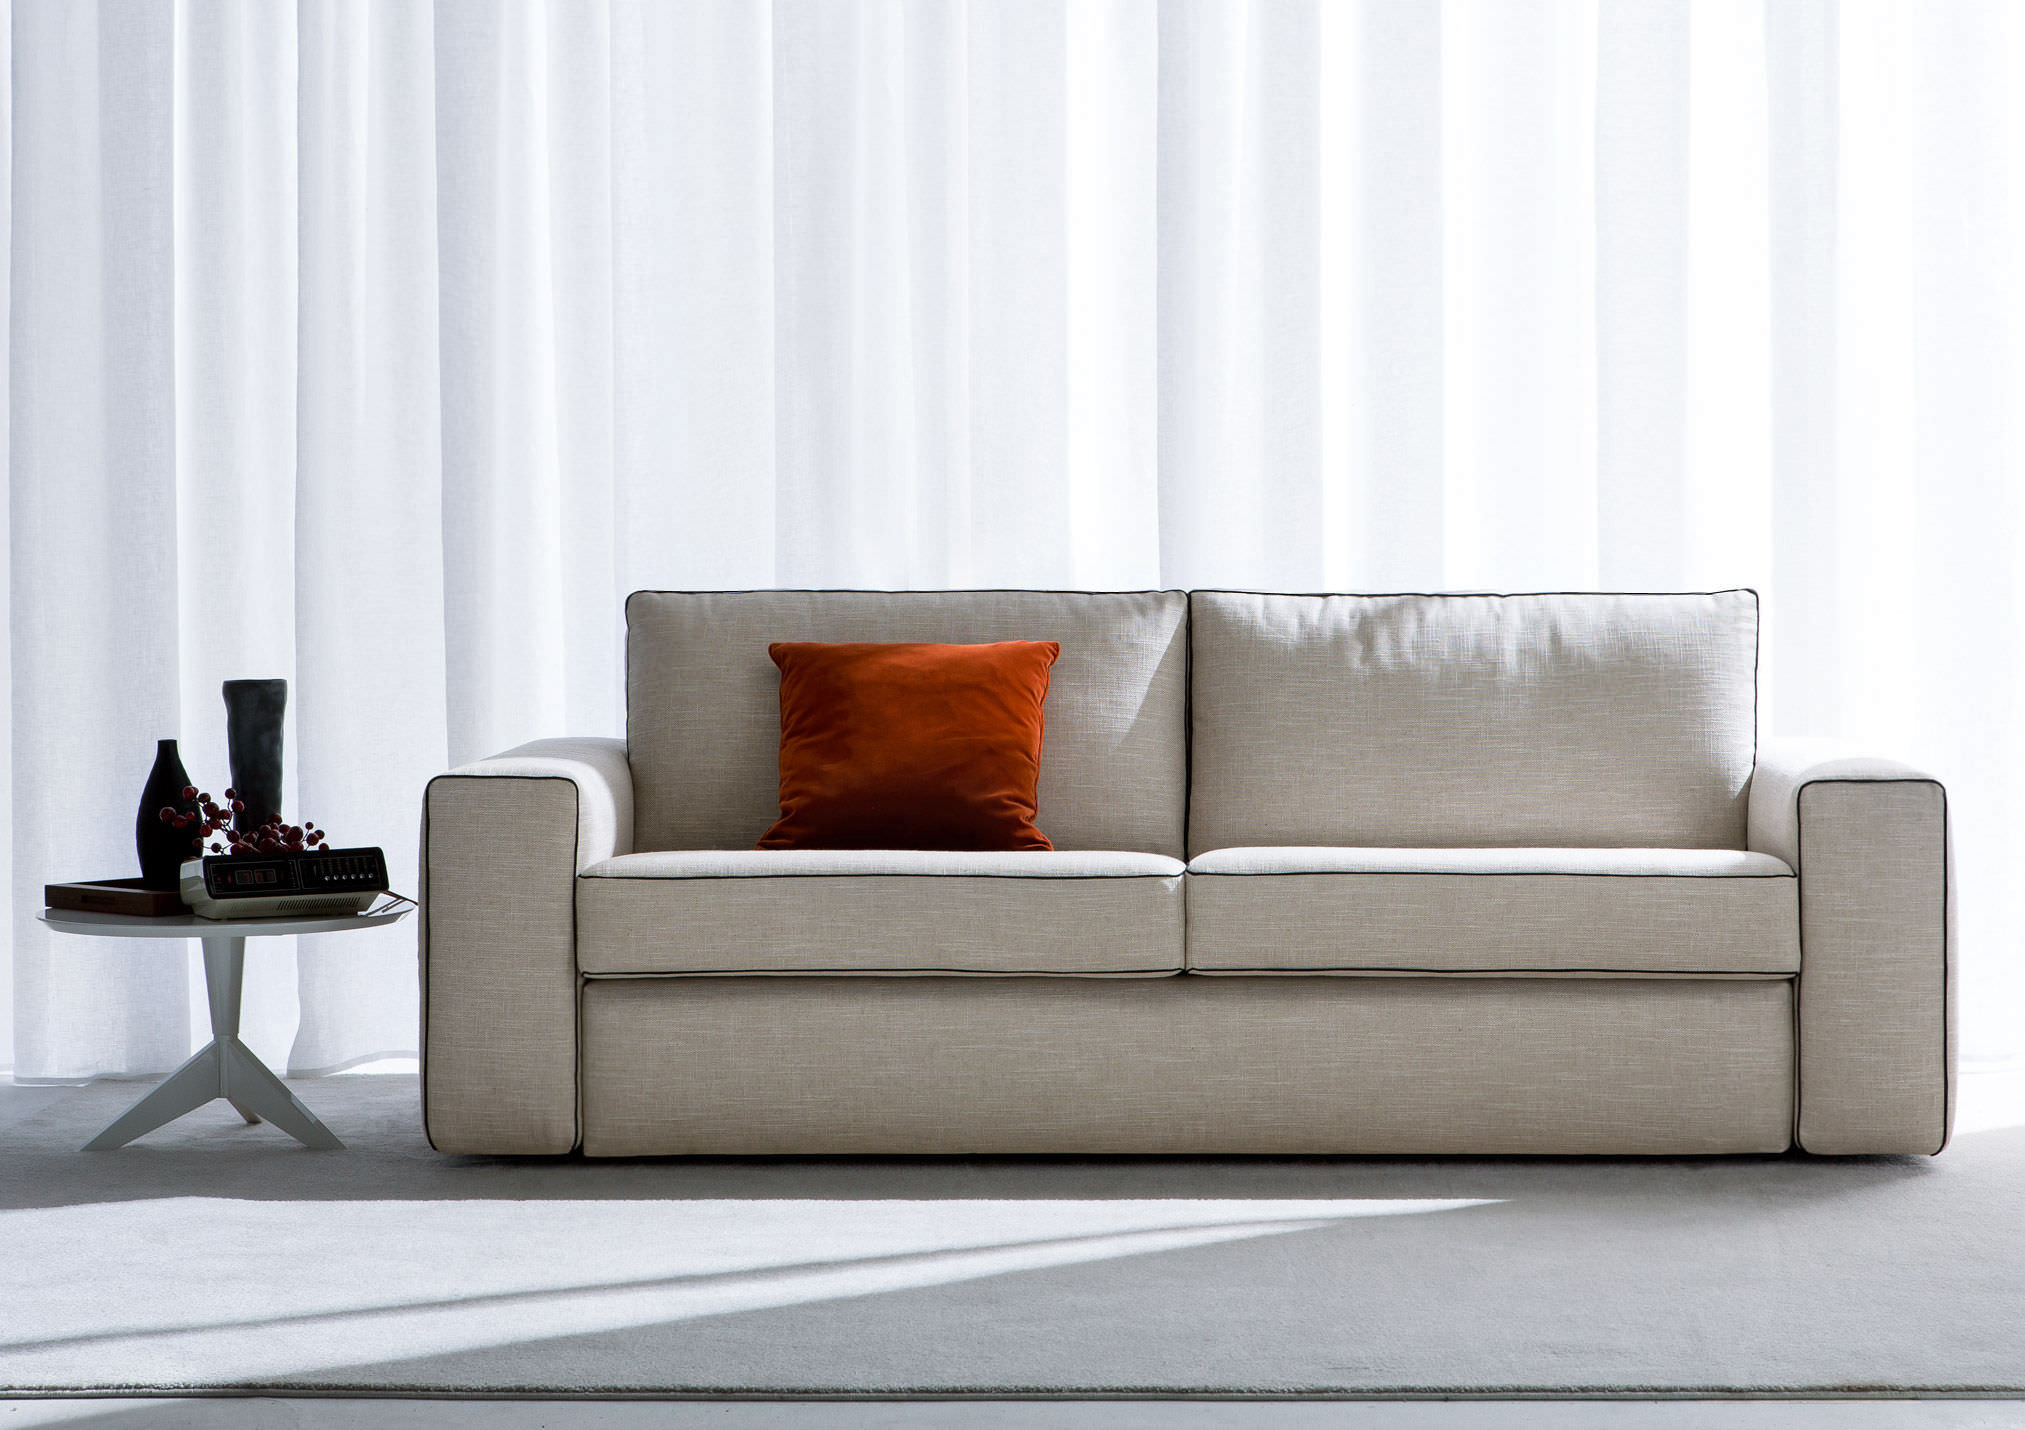 Best ideas about Most Comfortable Sectional Sofa . Save or Pin Most fortable Sofa Now.